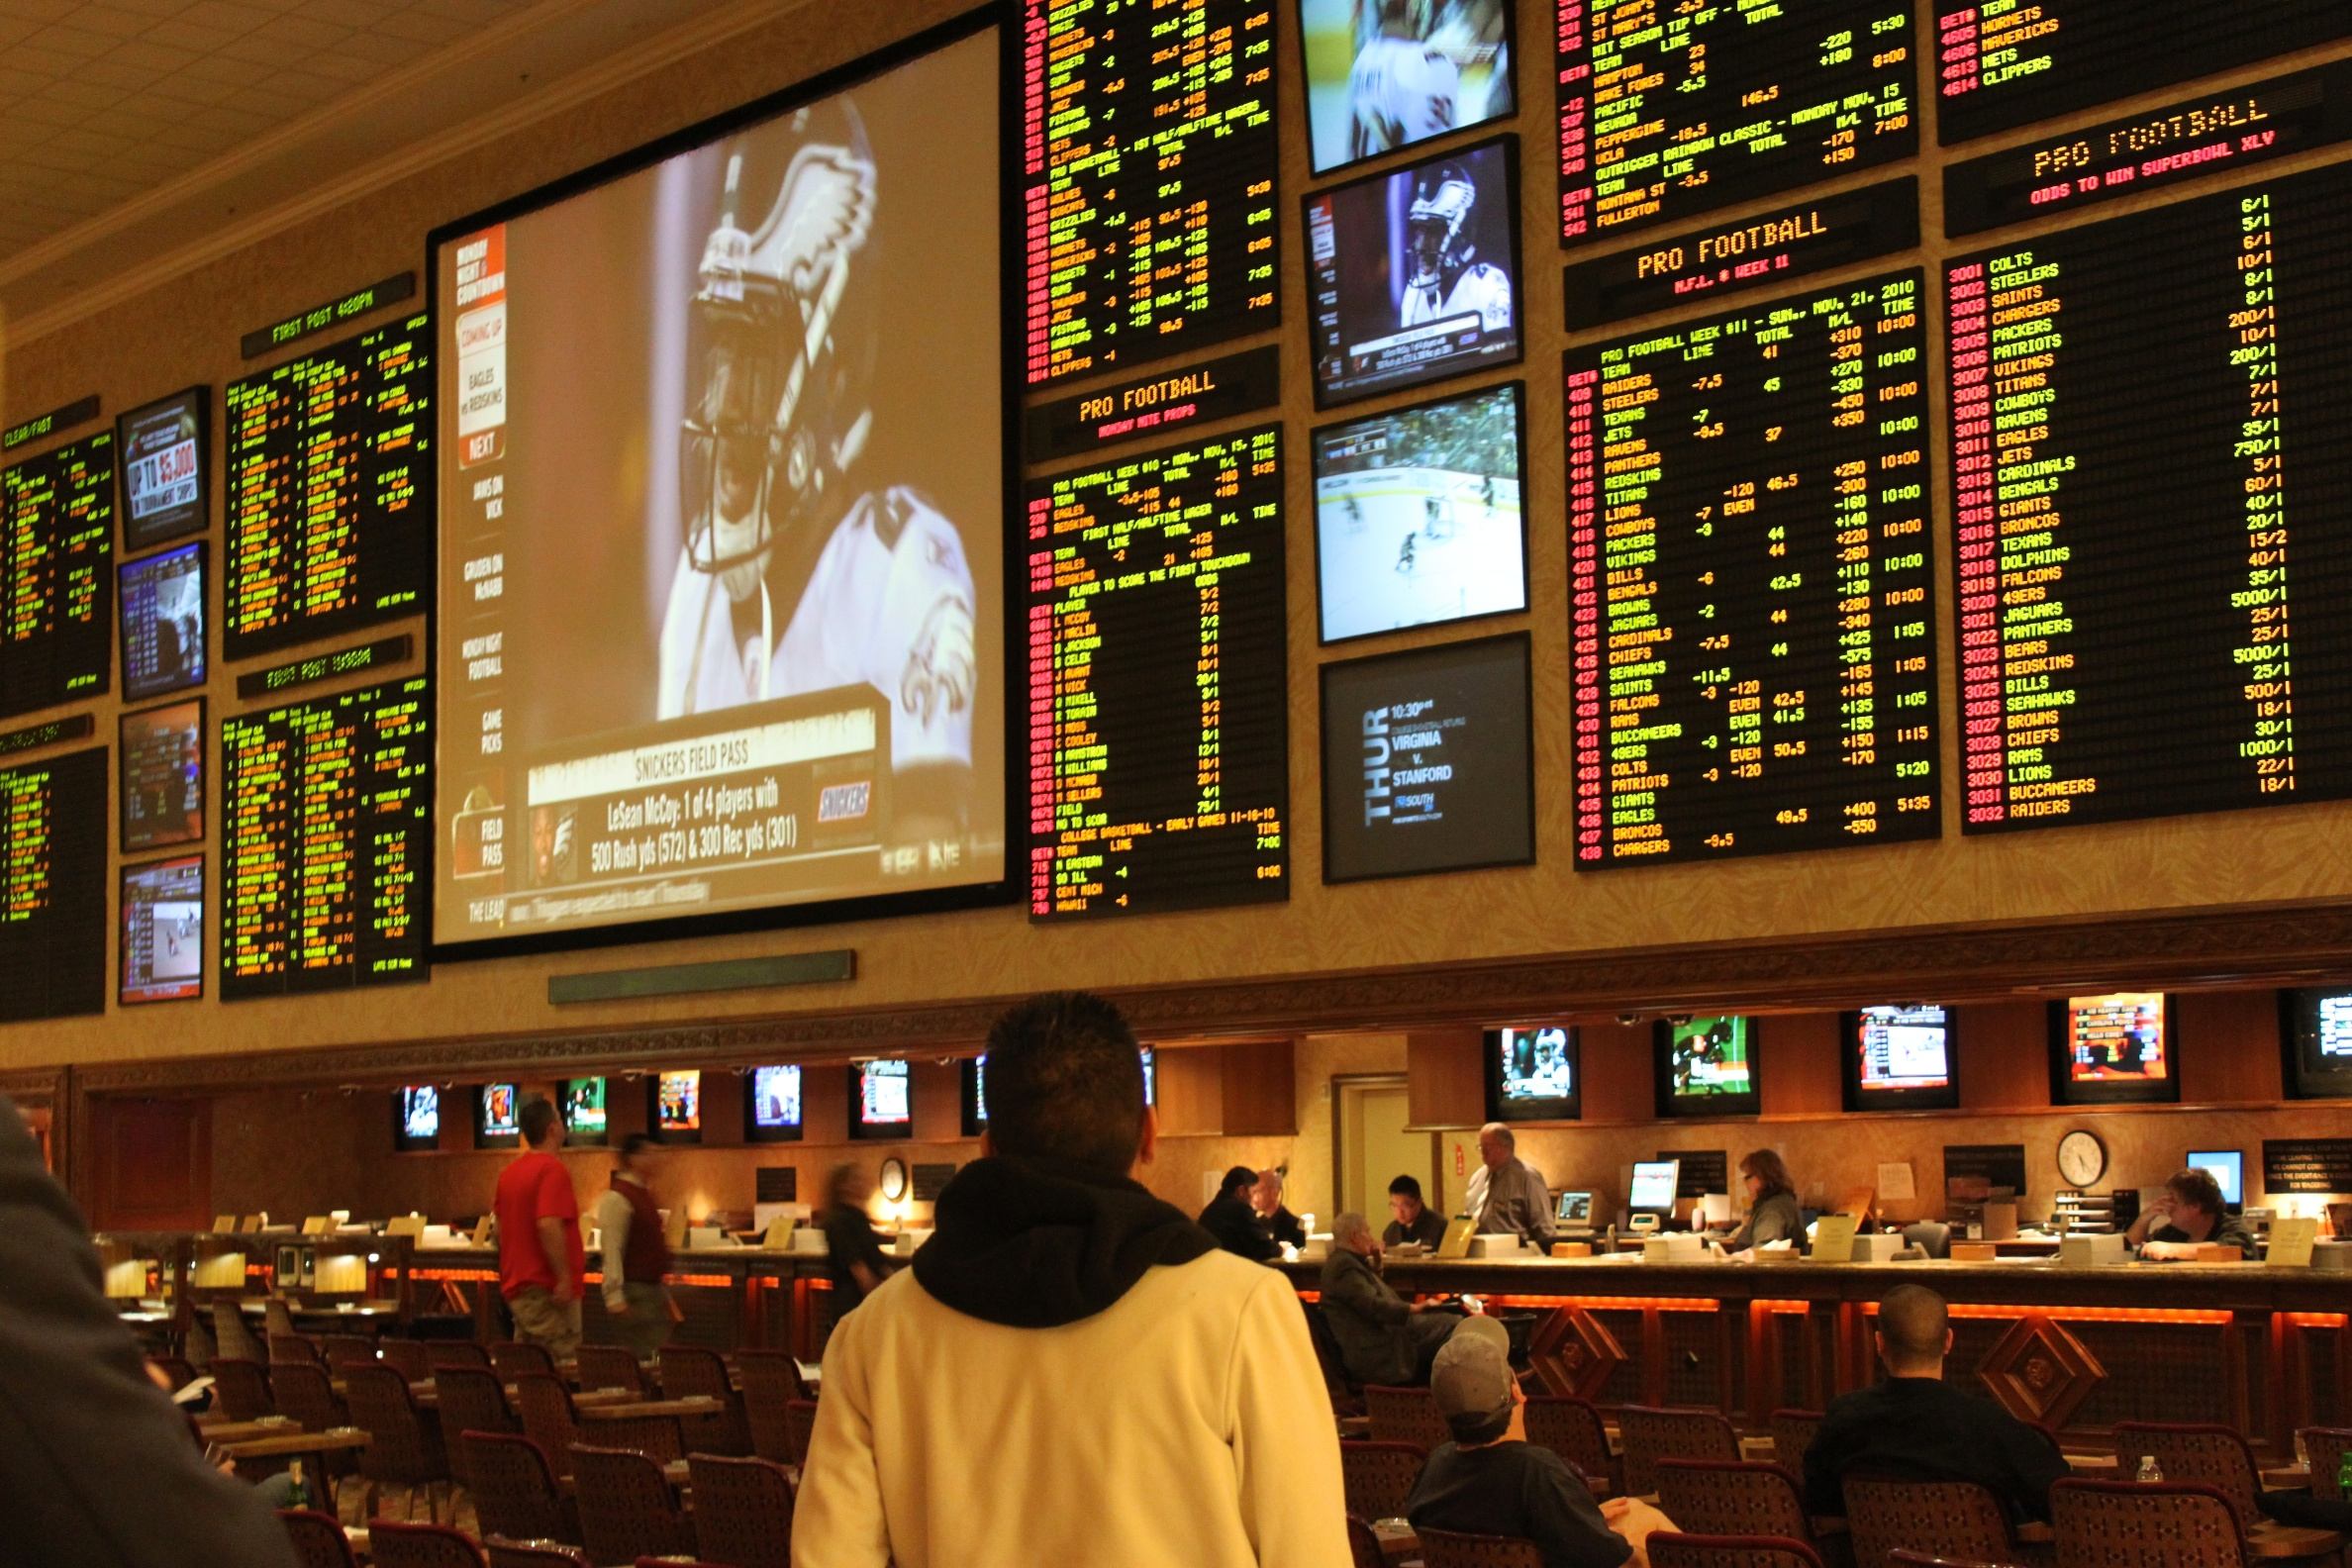 What sports usually have the best betting odds